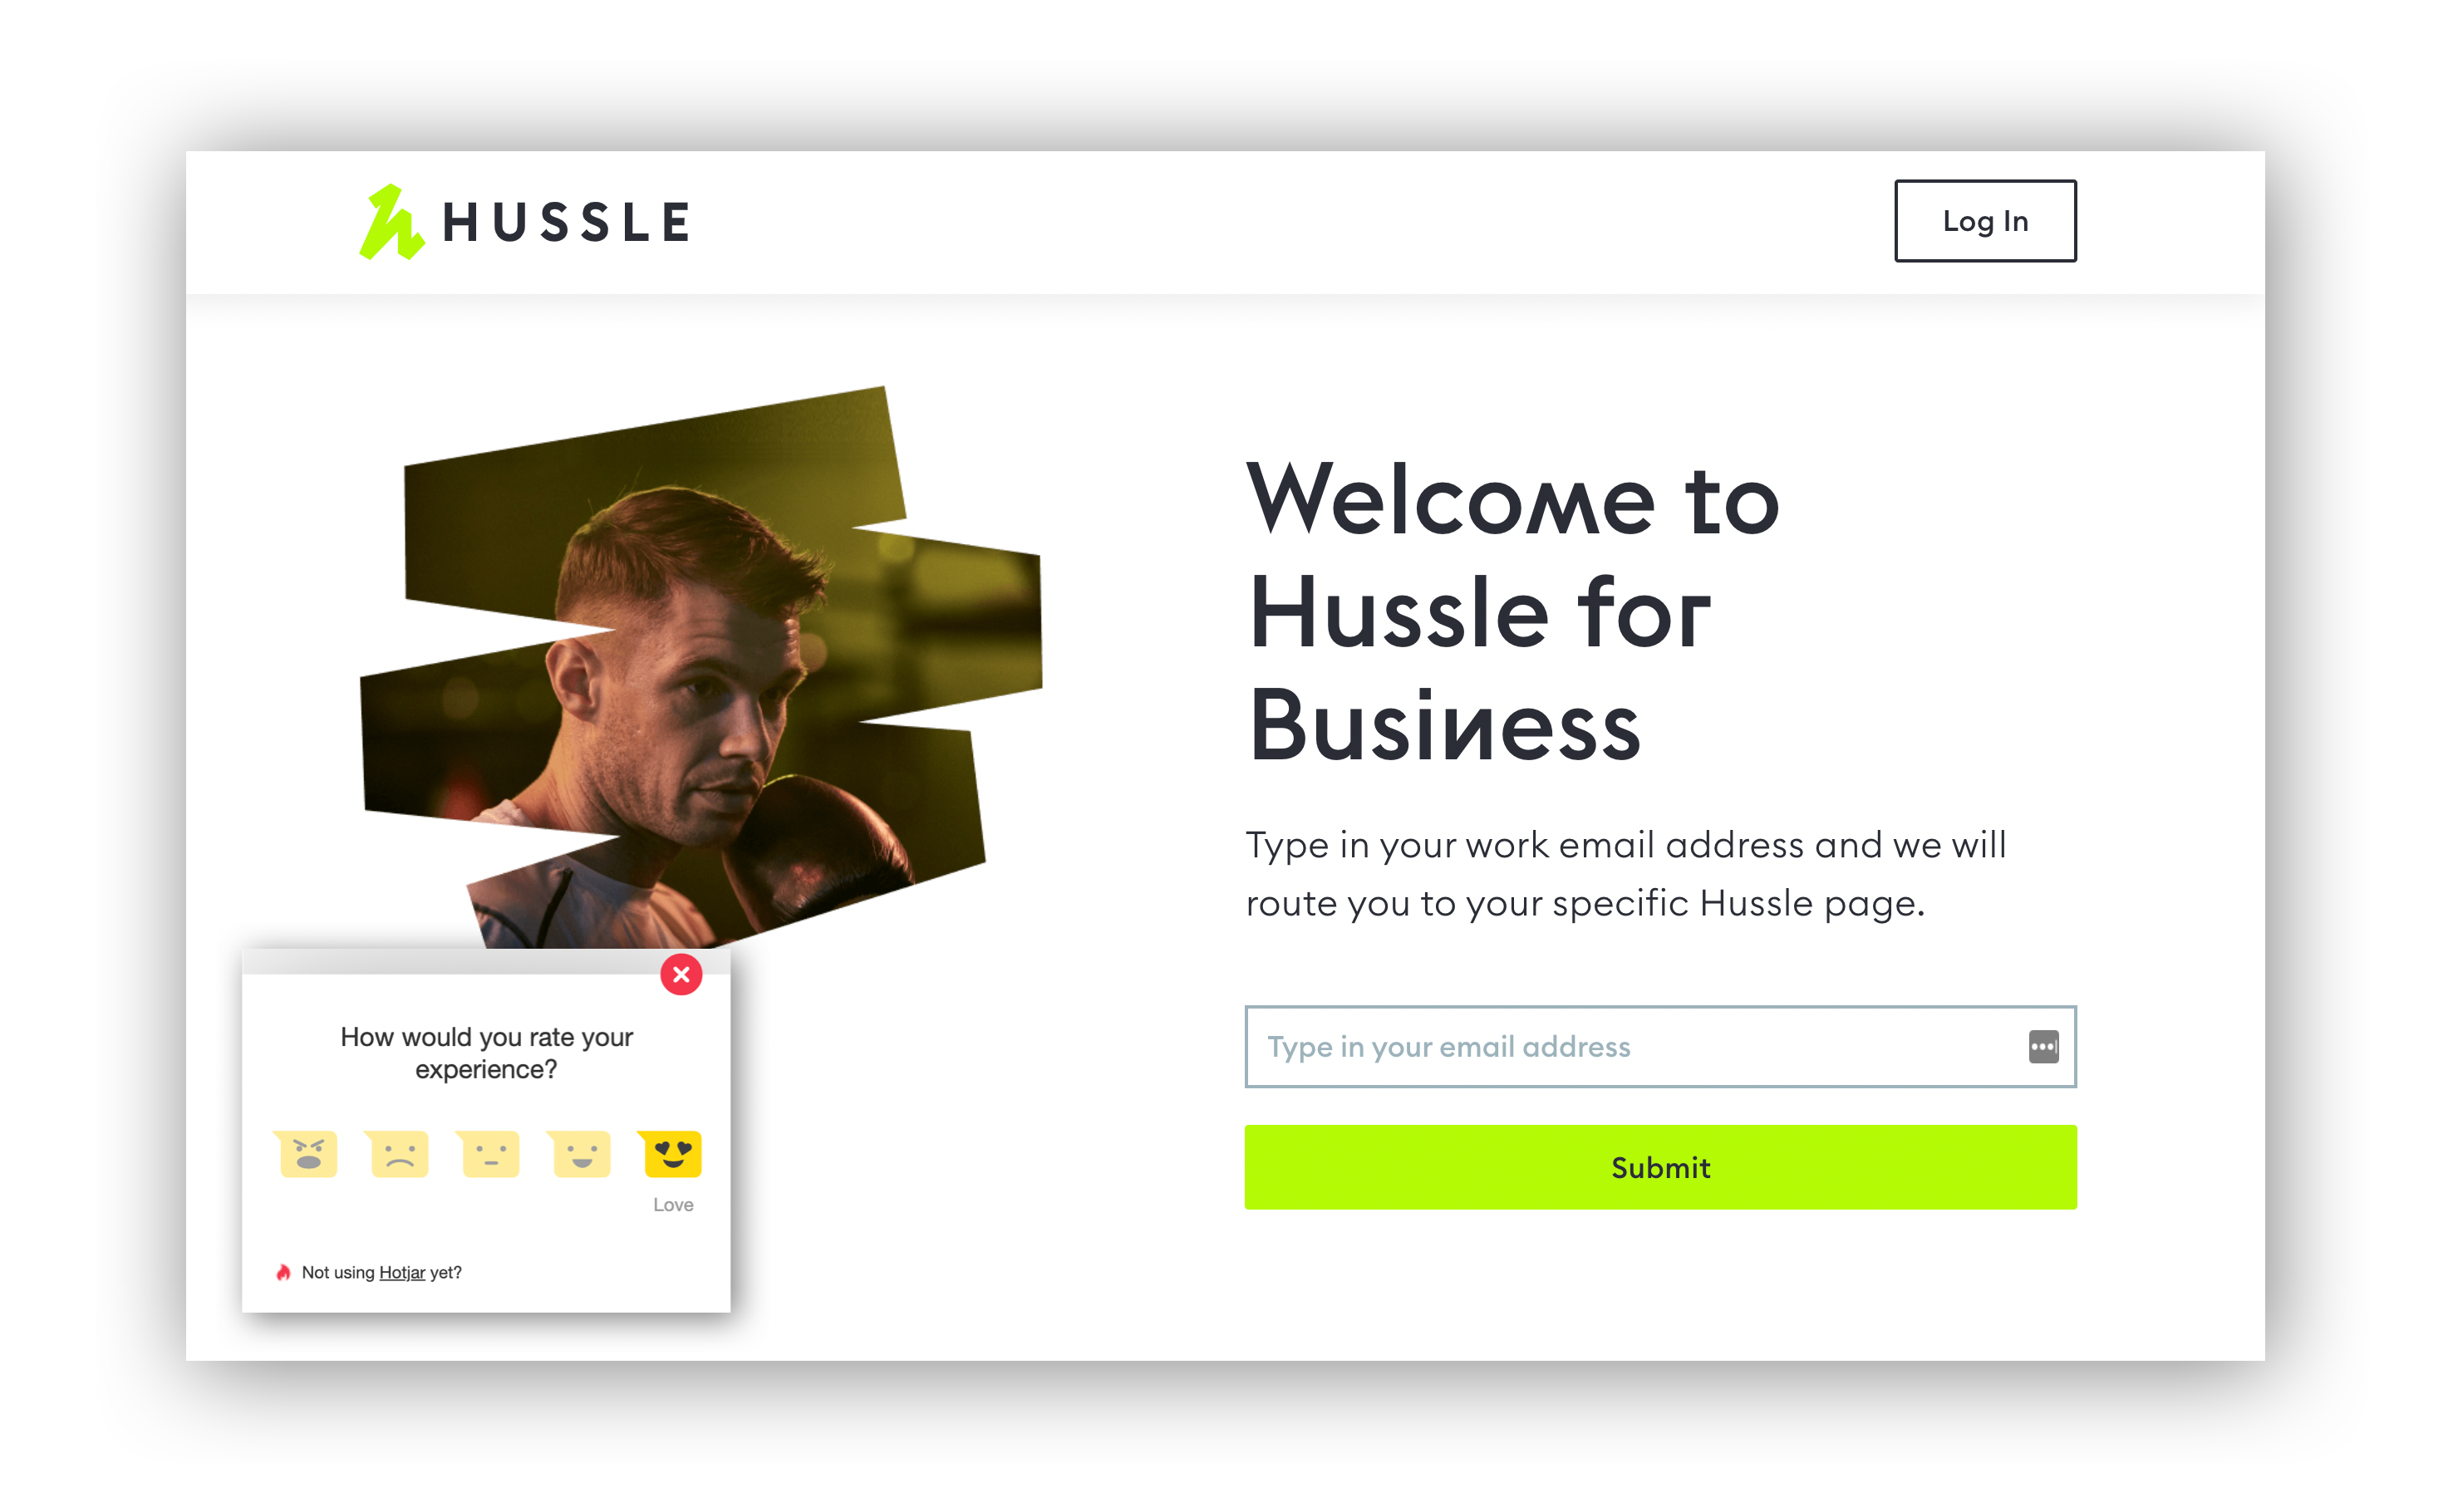 HOTJAR HELPS LUKE LEARN FROM USERS AS THEY EXPERIENCE HUSSLE'S PRODUCT